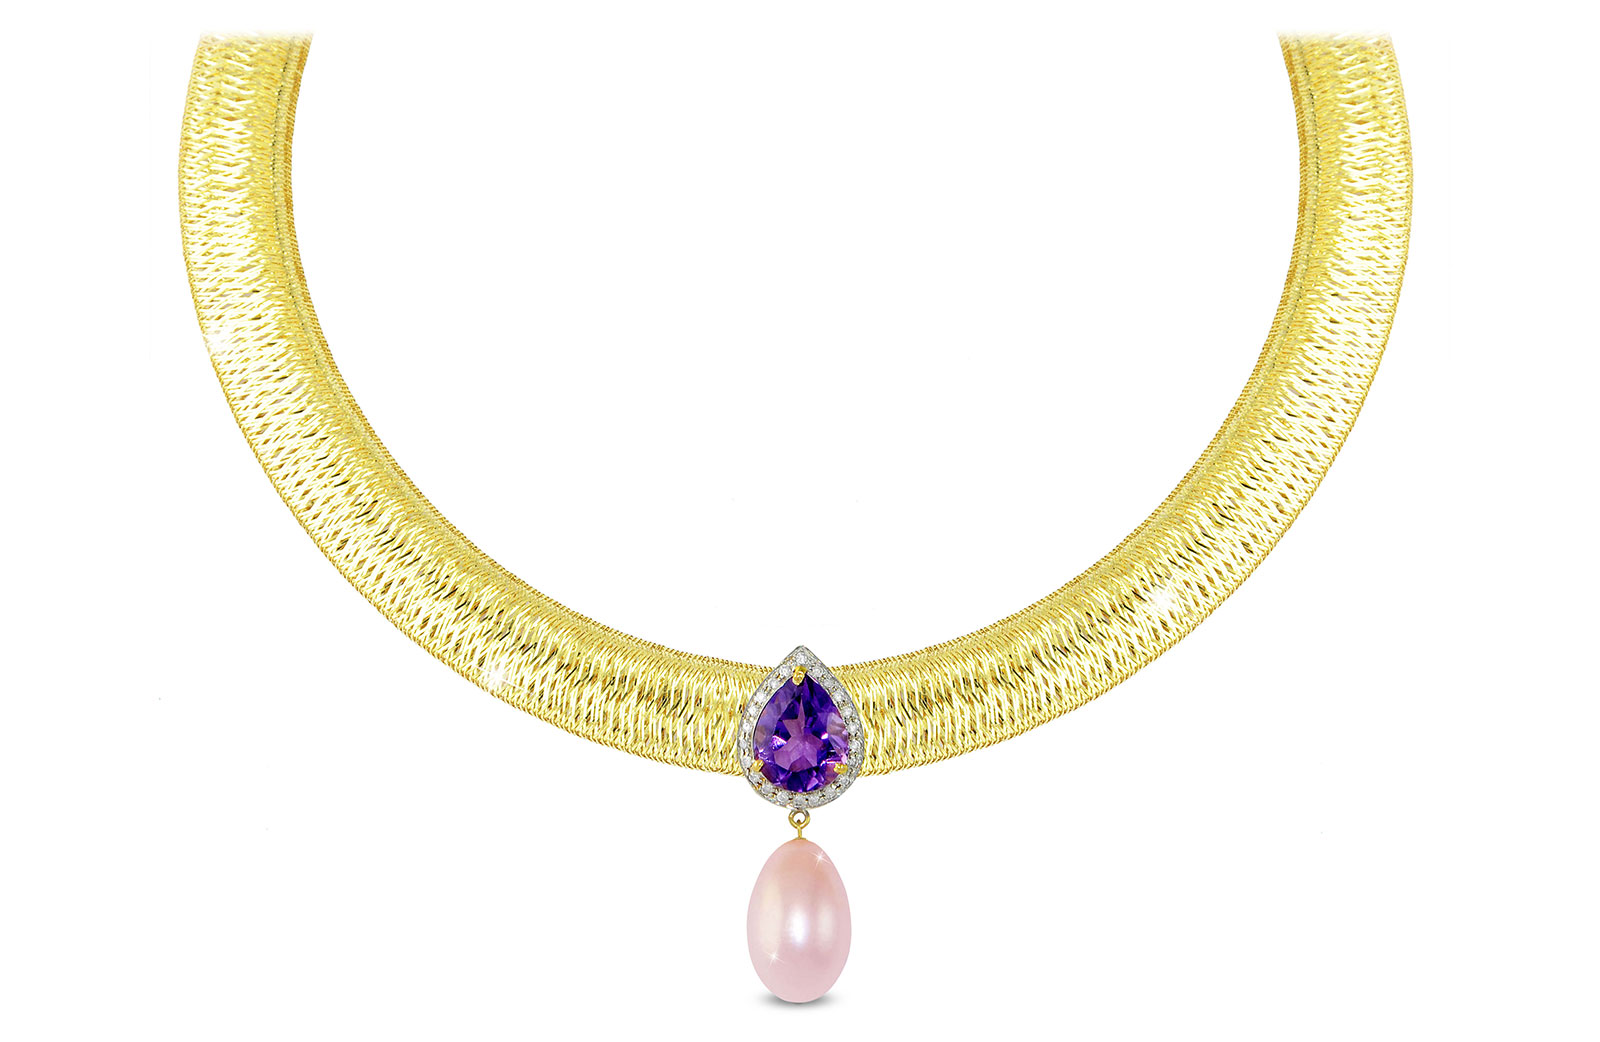 Vera Perla 18K Gold 0.12ct Diamonds, Amethyst and 13mm Purple Pearl Necklace